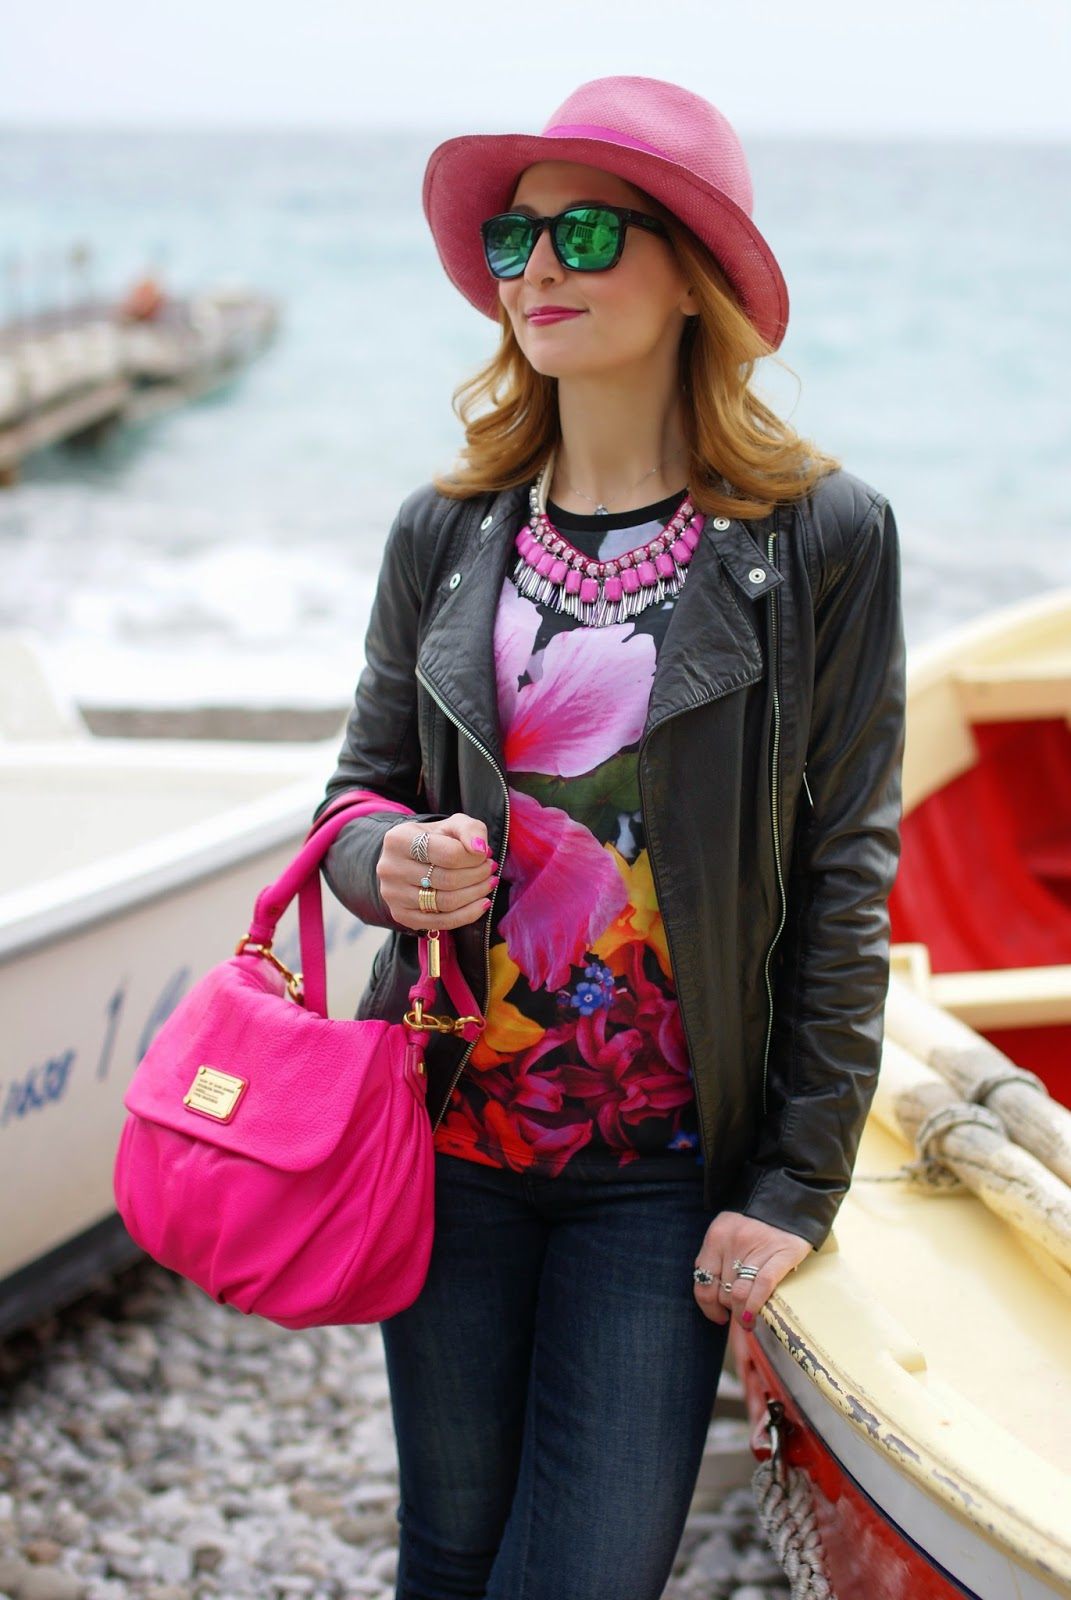 cappello paglia fucsia, Elisabetta Franchi leather jacket, Sodini collana fucsia, Marc by Marc Jacobs lil ukita pop pink bag, Nerano in Sorrento Coast, Fashion and Cookies, fashion blogger